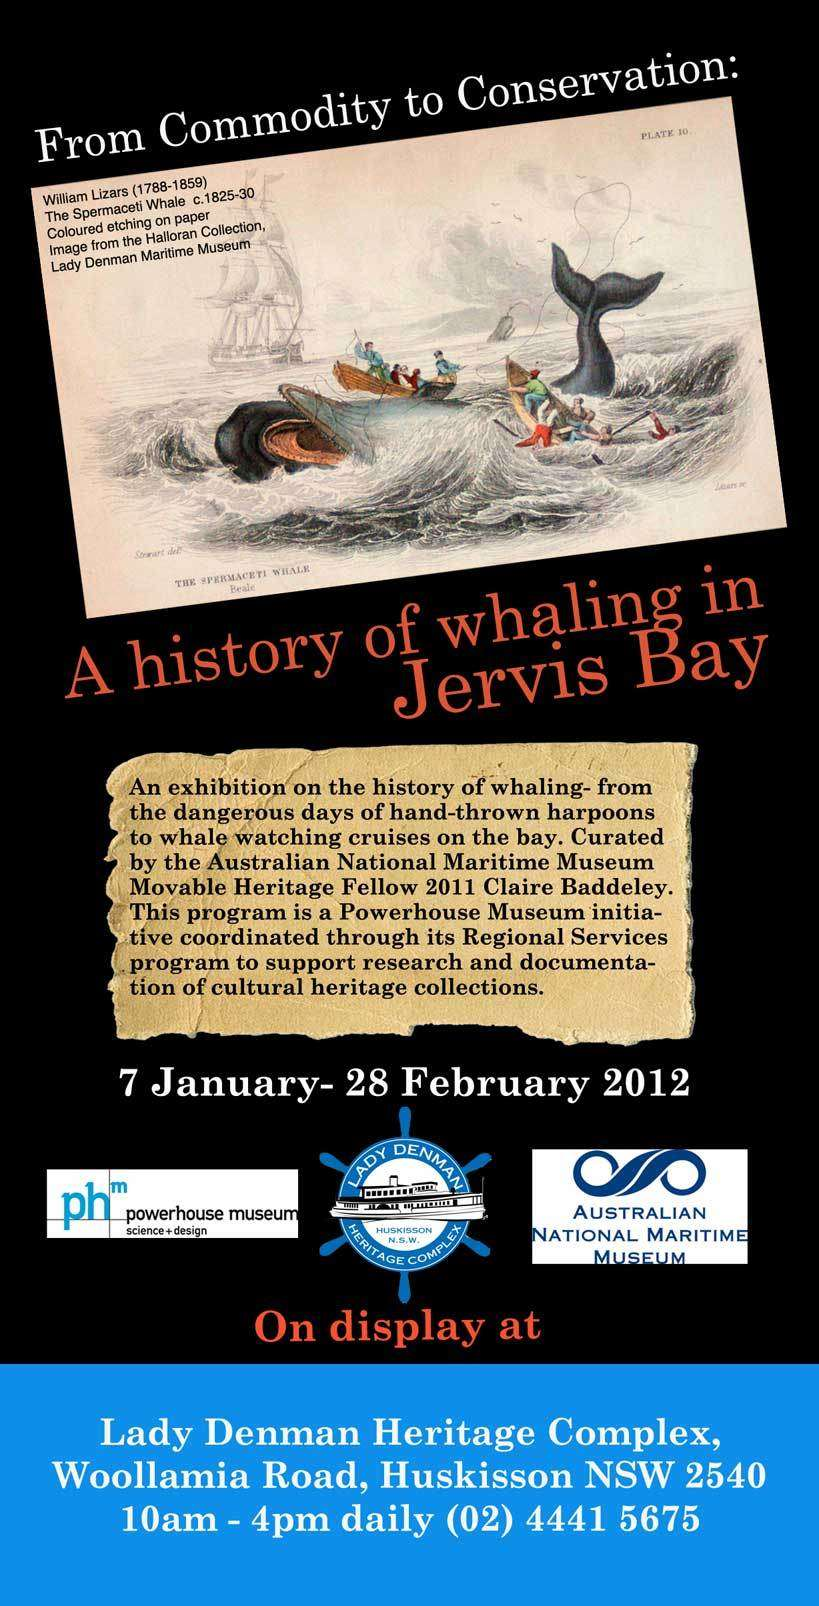 History of whaling in Jervis Bay